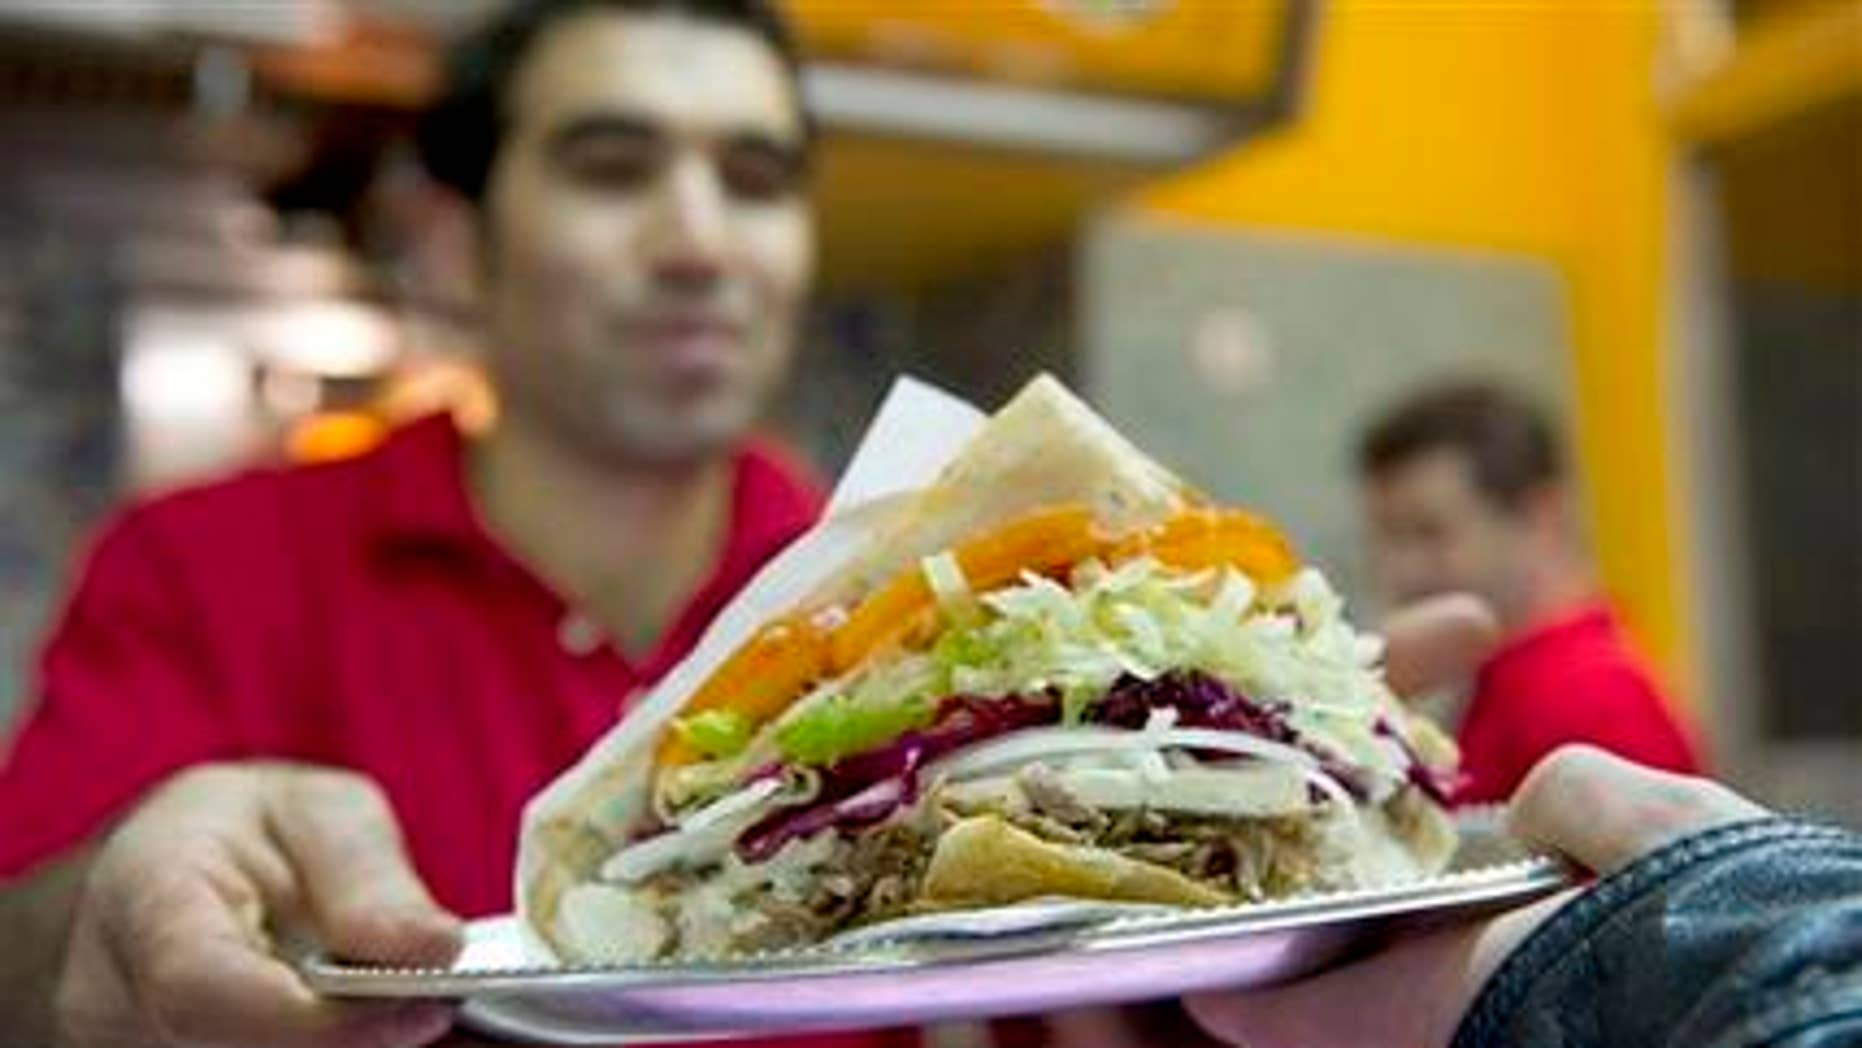 Turkish Abdullah Ekinci serves a doner kebab in a Turkish restaurant in Berlin, Germany, Sunday, March 21, 2010. Forget about bratwurst, currywurst and other kinds of sausages _ doner kebab, or shawarma, has overtaken traditional German fast food as the country's favorite snack on the go.     (AP Photo/Gero Breloer)